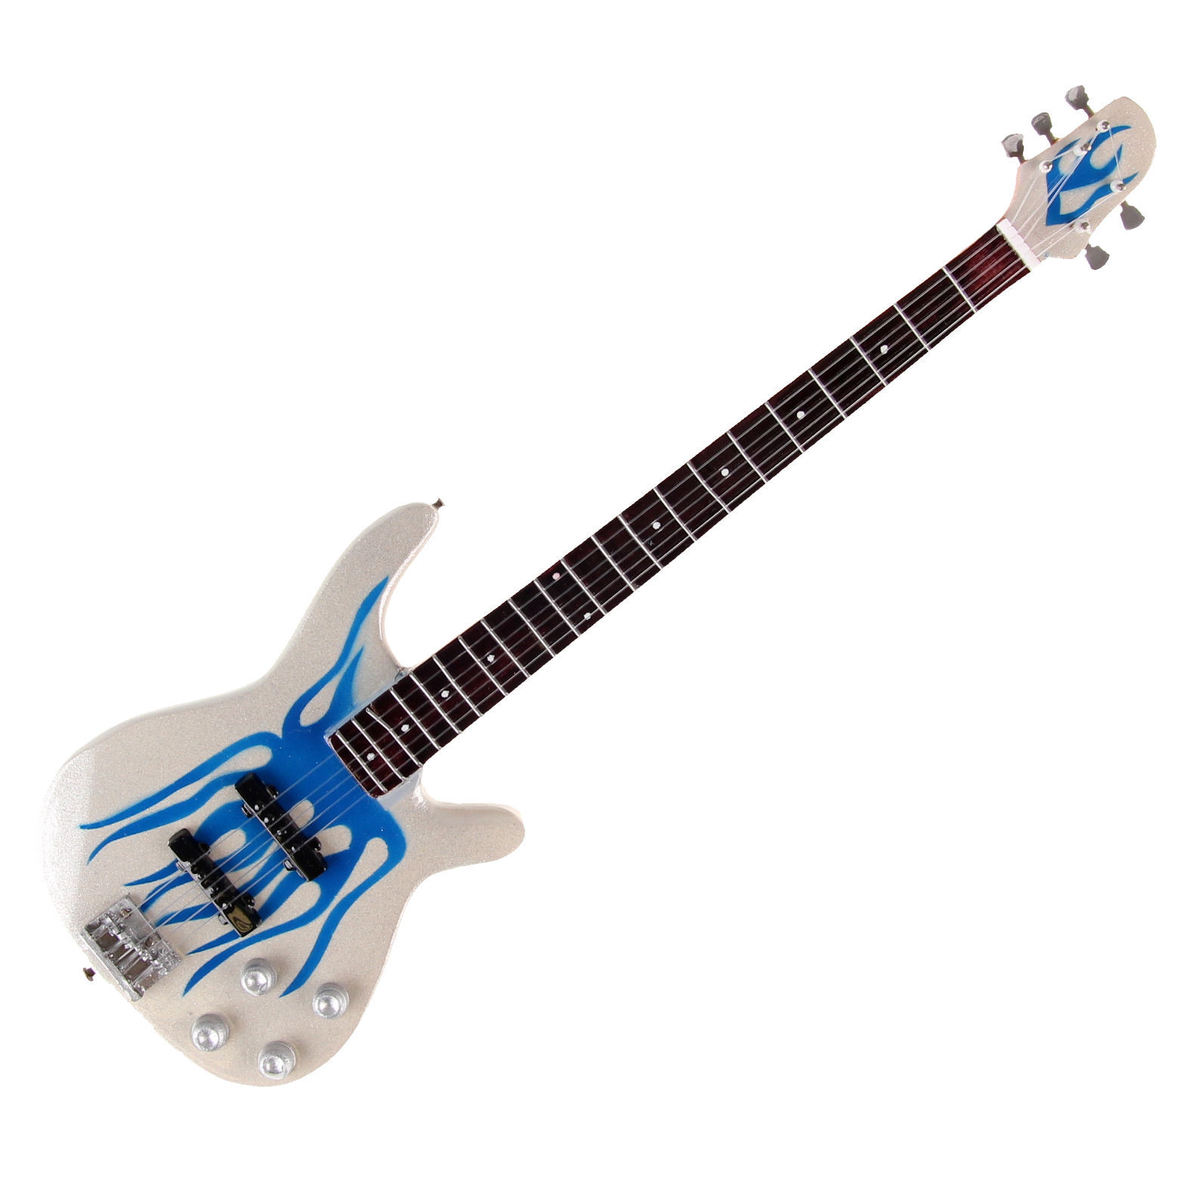 kytara Metallica - Robert Trujillo - Blue Flame Bass - White/Blue - MGT-2516